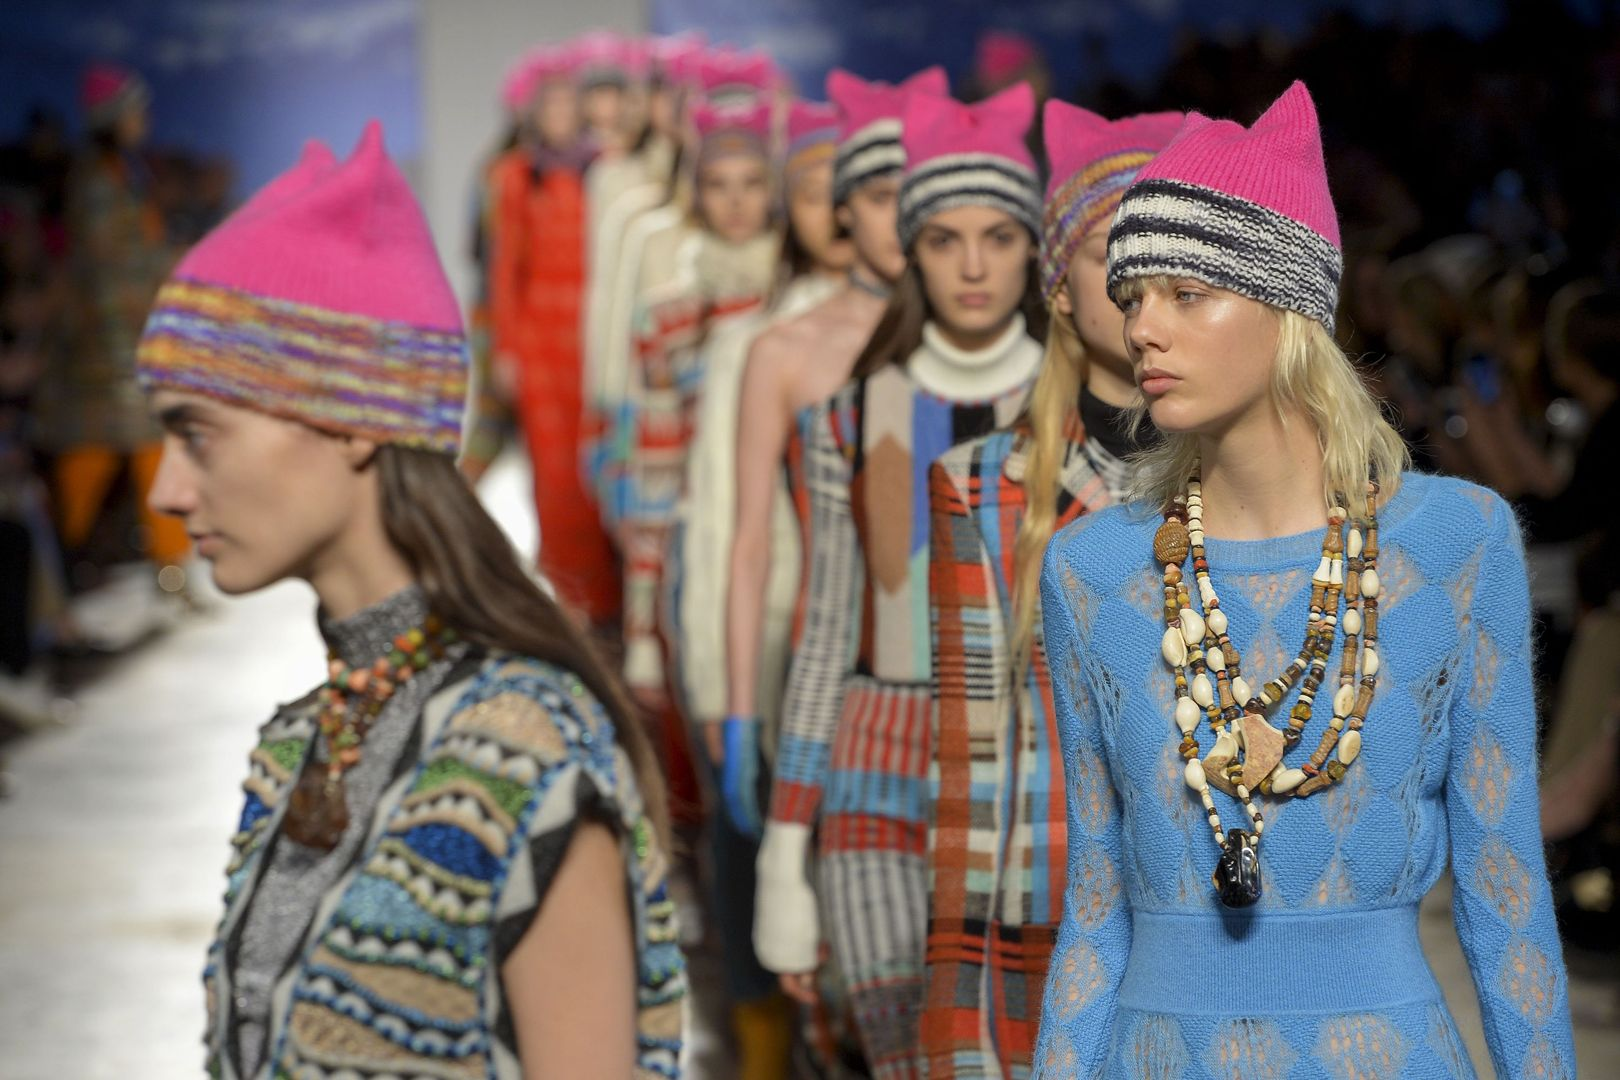 Missoni FW 17 show closed with models taking to the runway in pink knitted beanies, with a cat ear shape.  It was inspired by the Women's March in Washington.